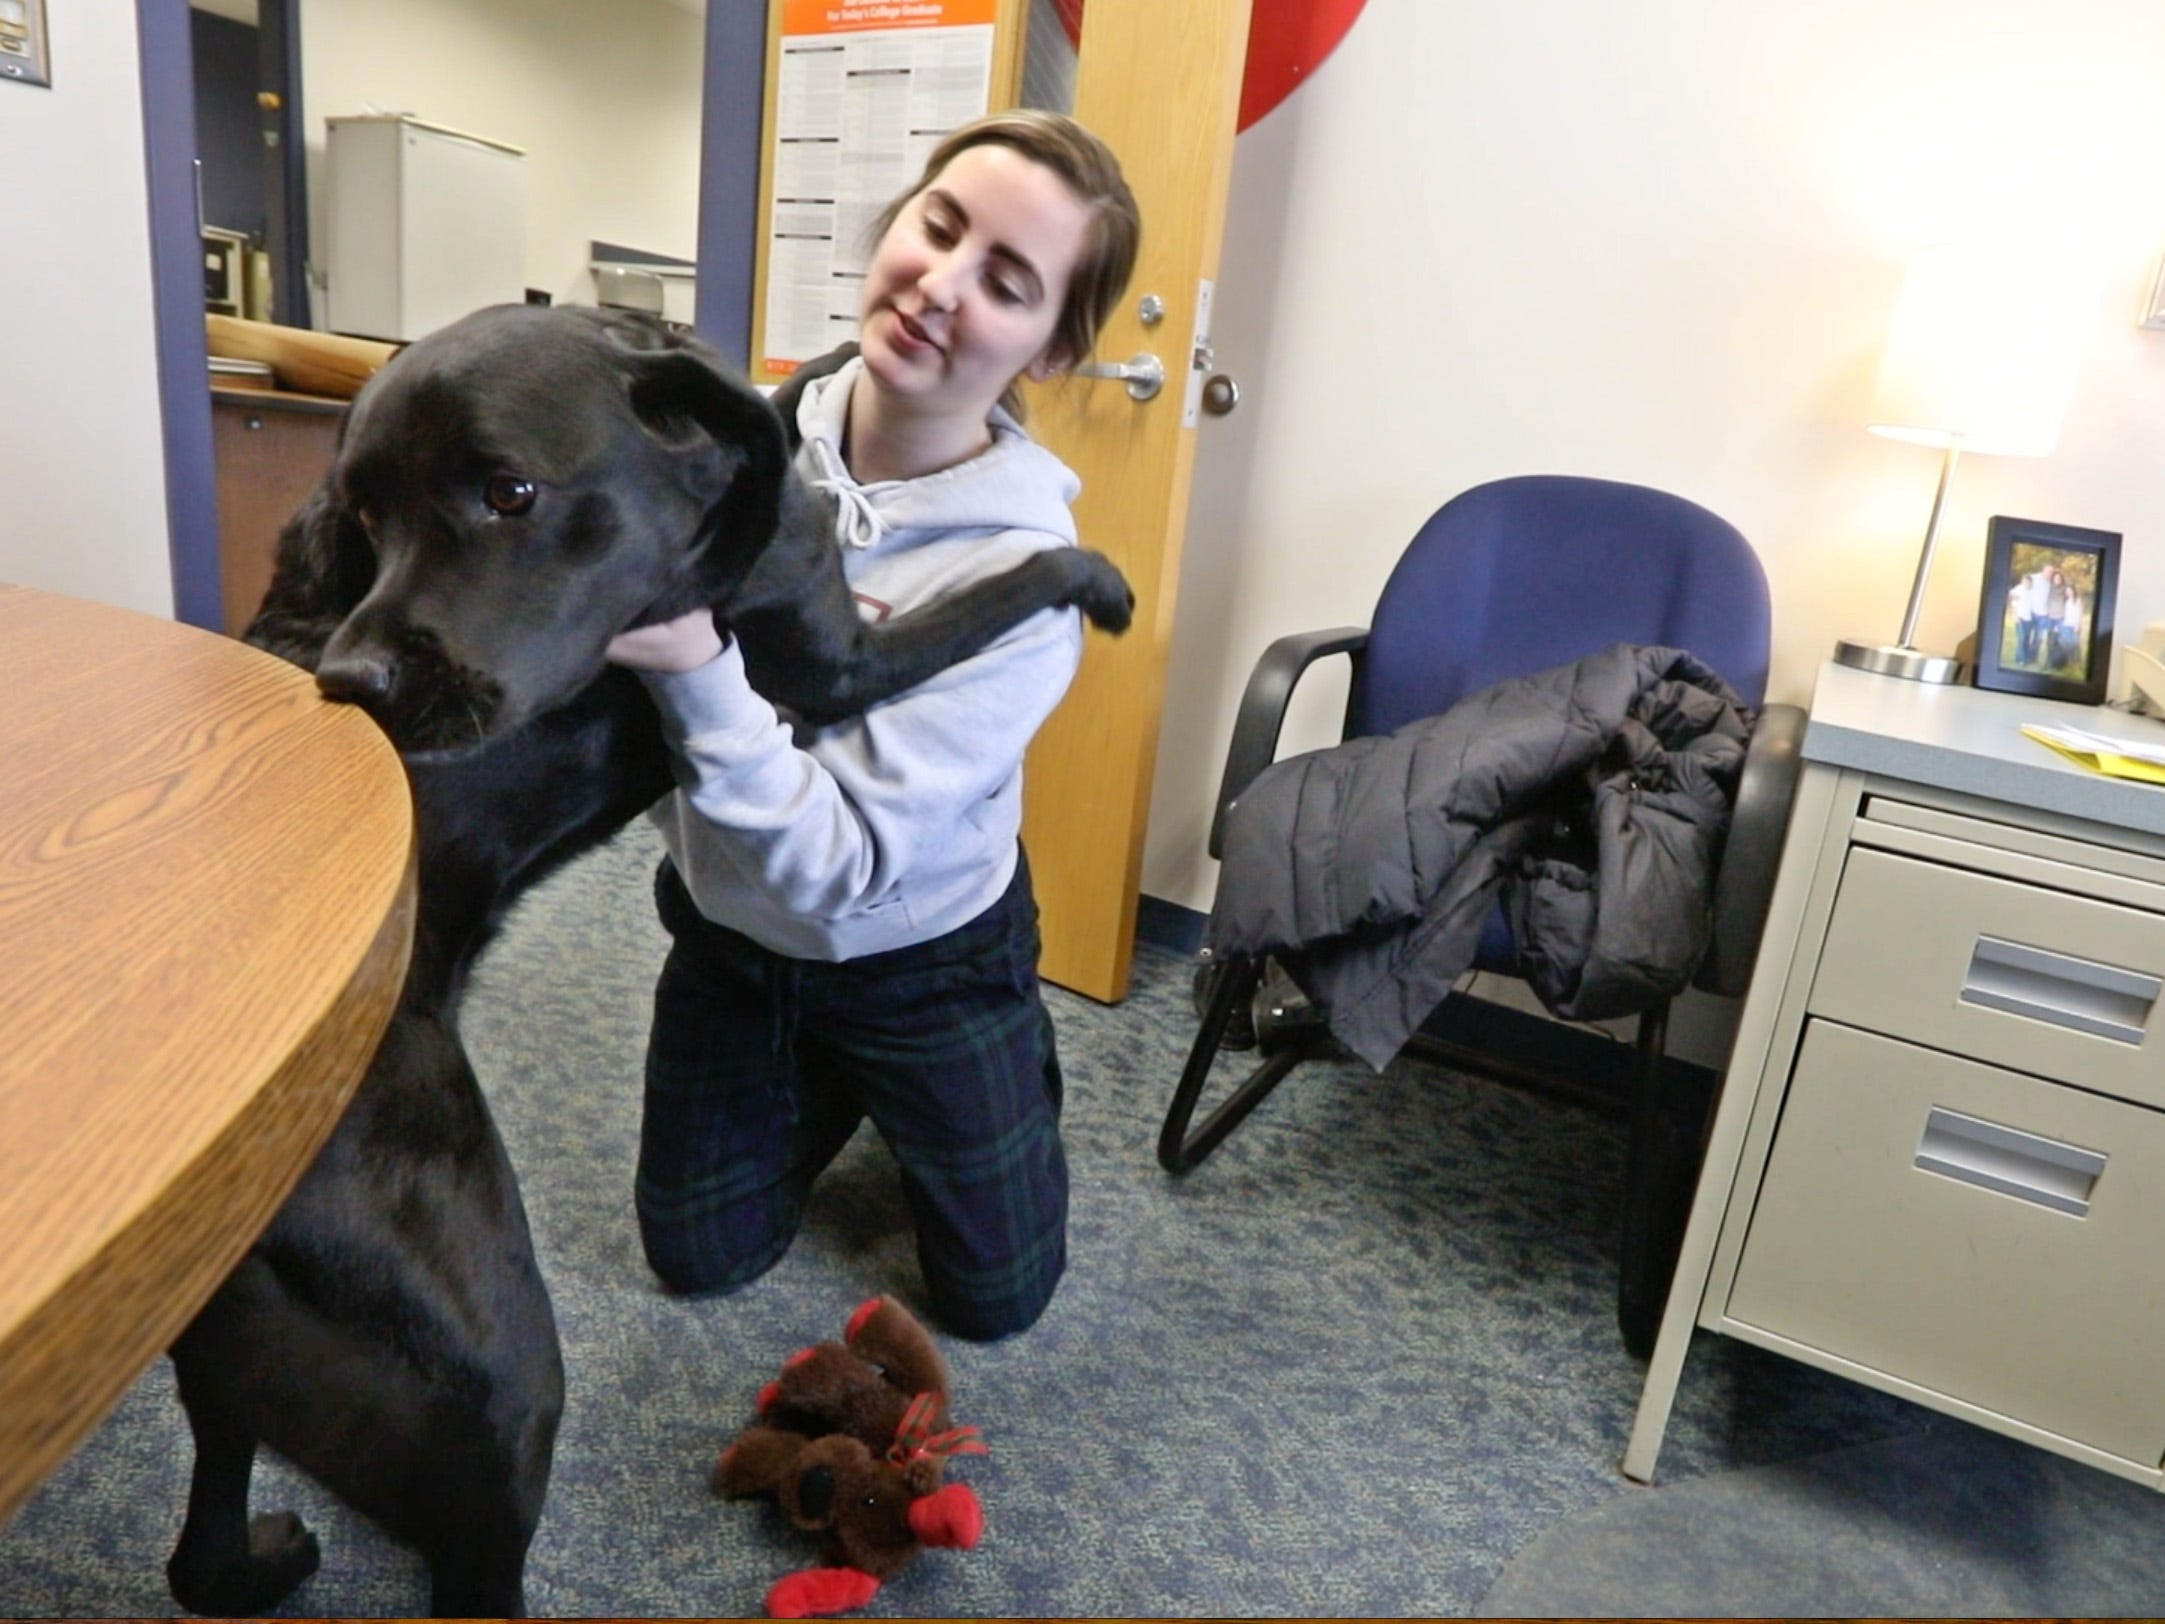 Breanna Tamburello, 17, a senior, visits with Ruby, a 4-year-old black Labrador retriever who is the new therapy dog at Spencerport High School, on Tuesday, Jan. 29, 2019.